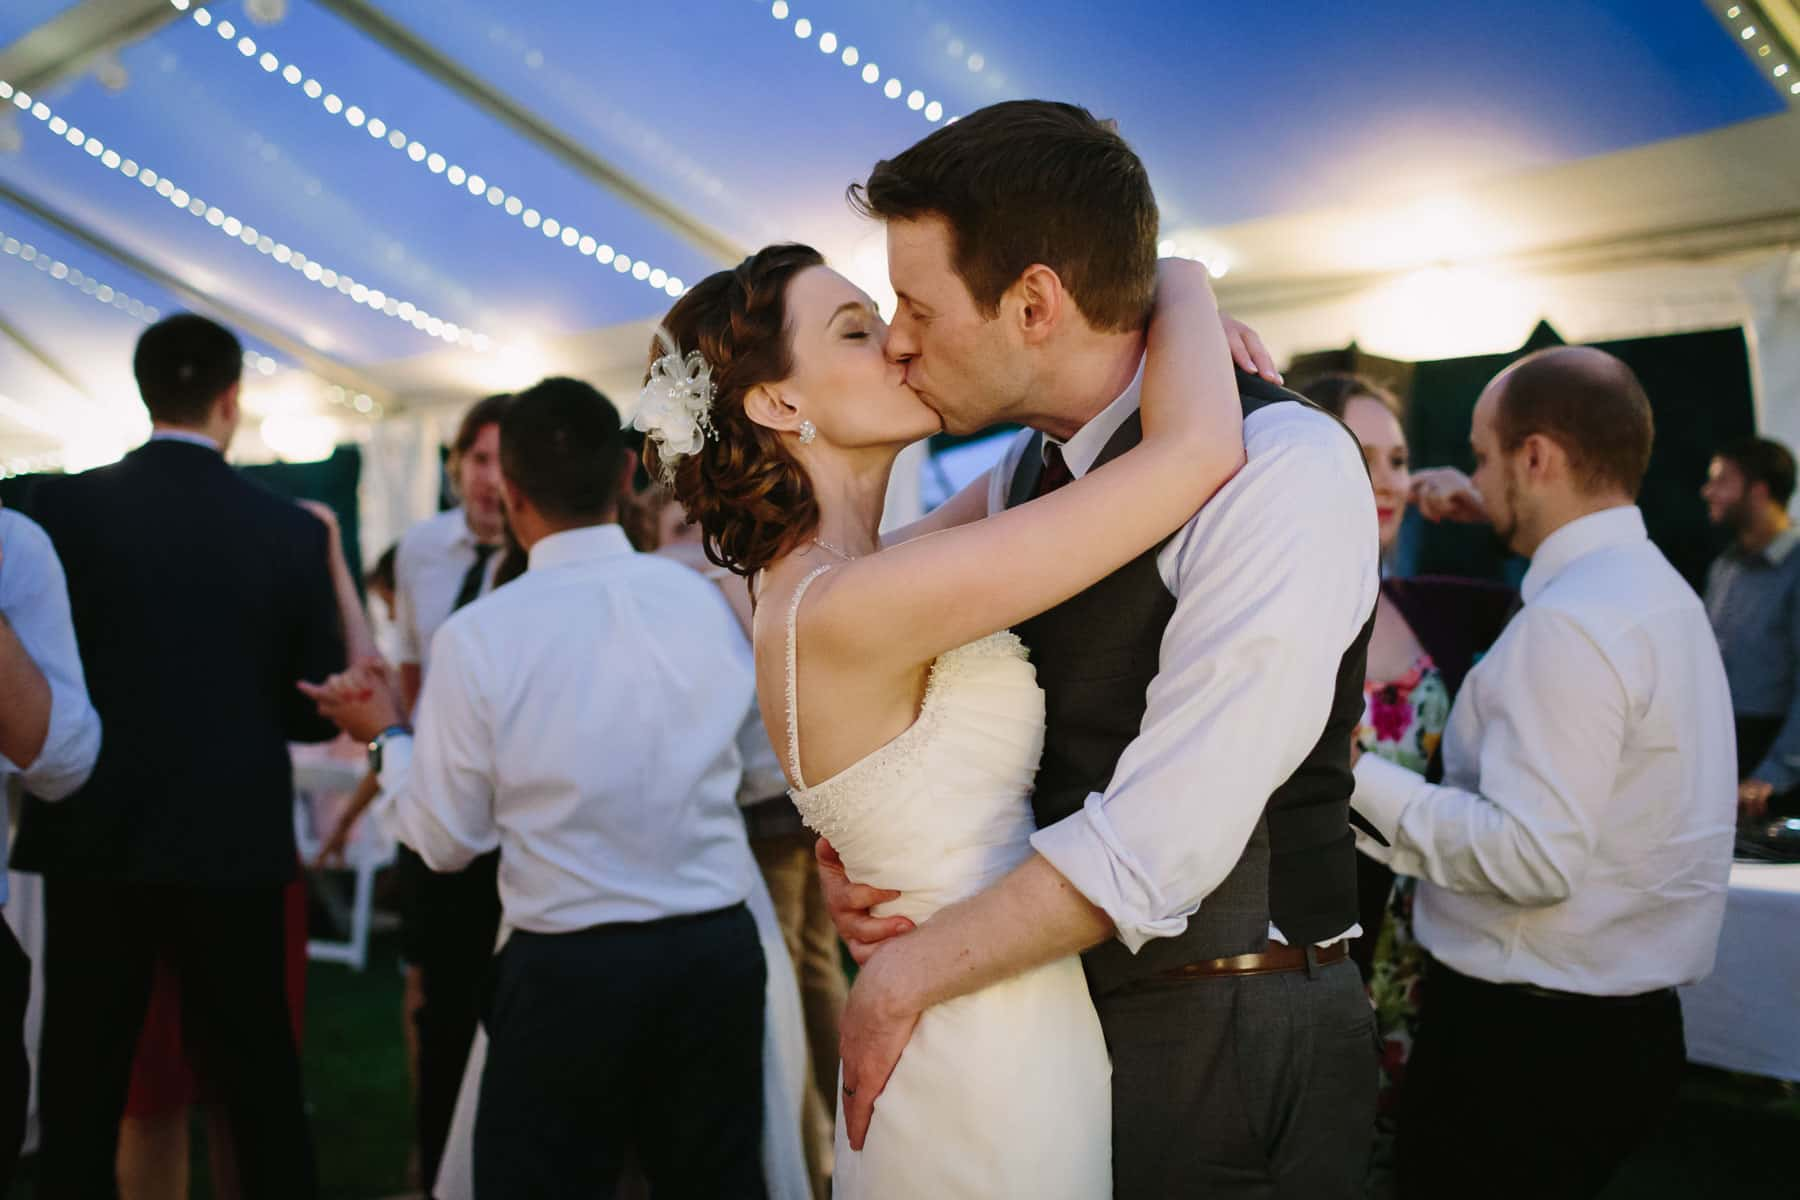 The bride and groom share a dance beneath a white tent during twilight in these backyard wedding photos.